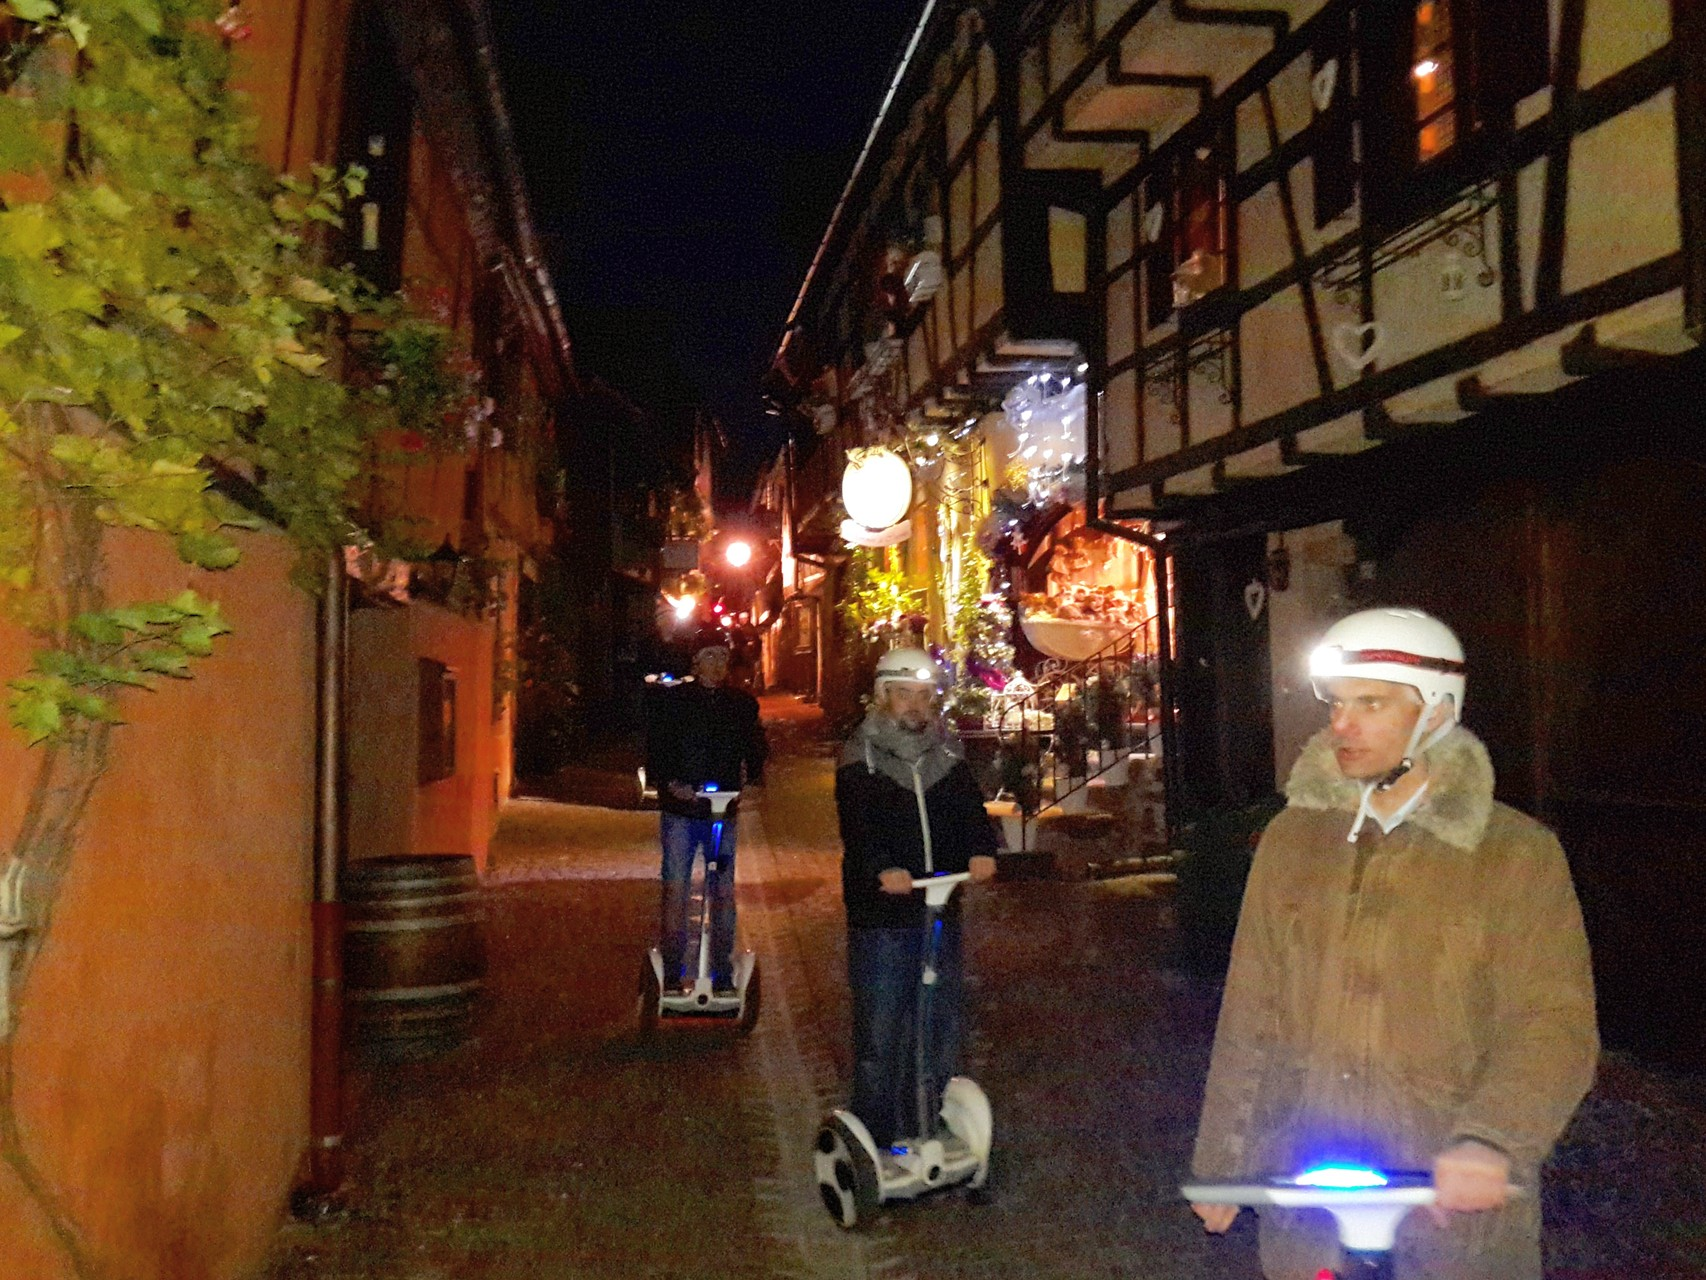 FUN MOVING GYROPODE SEGWAY EN ALSACE - Riquewihr, team building, incentive, séminaire